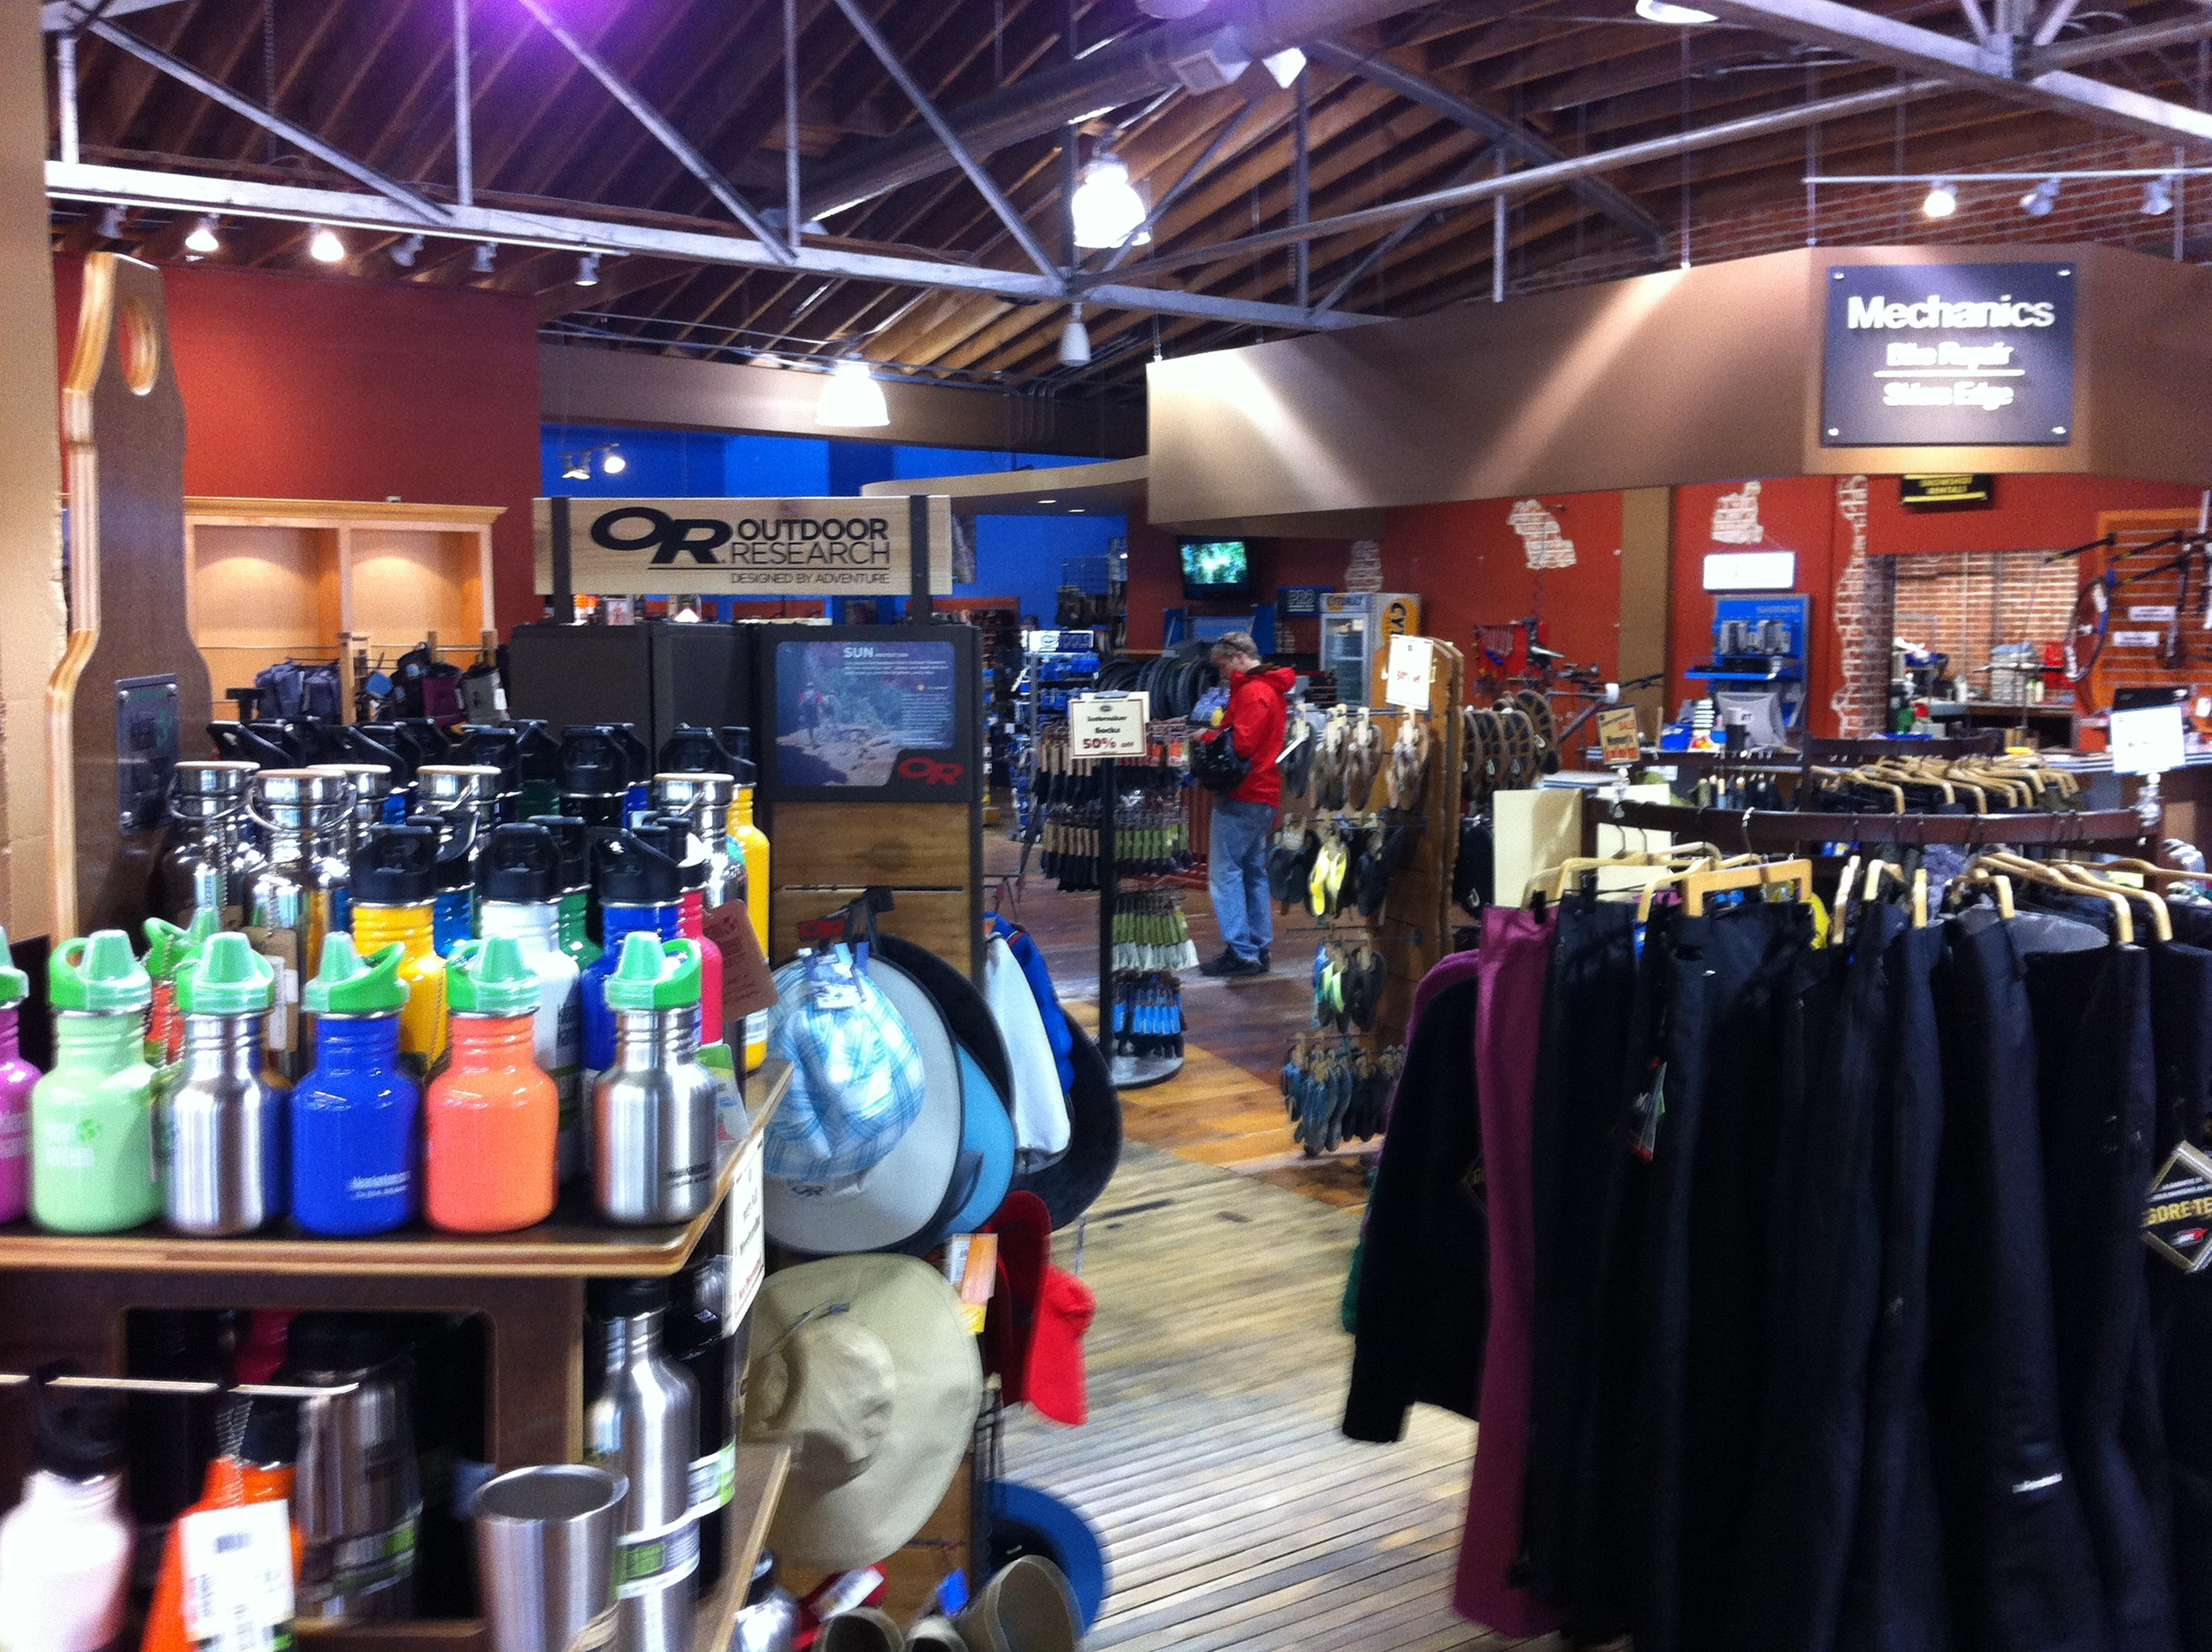 The Idaho Mountain Touring store offers gear and clothing or all seasons, as well as rentals. Boise River is a great place to cycle along or float down!